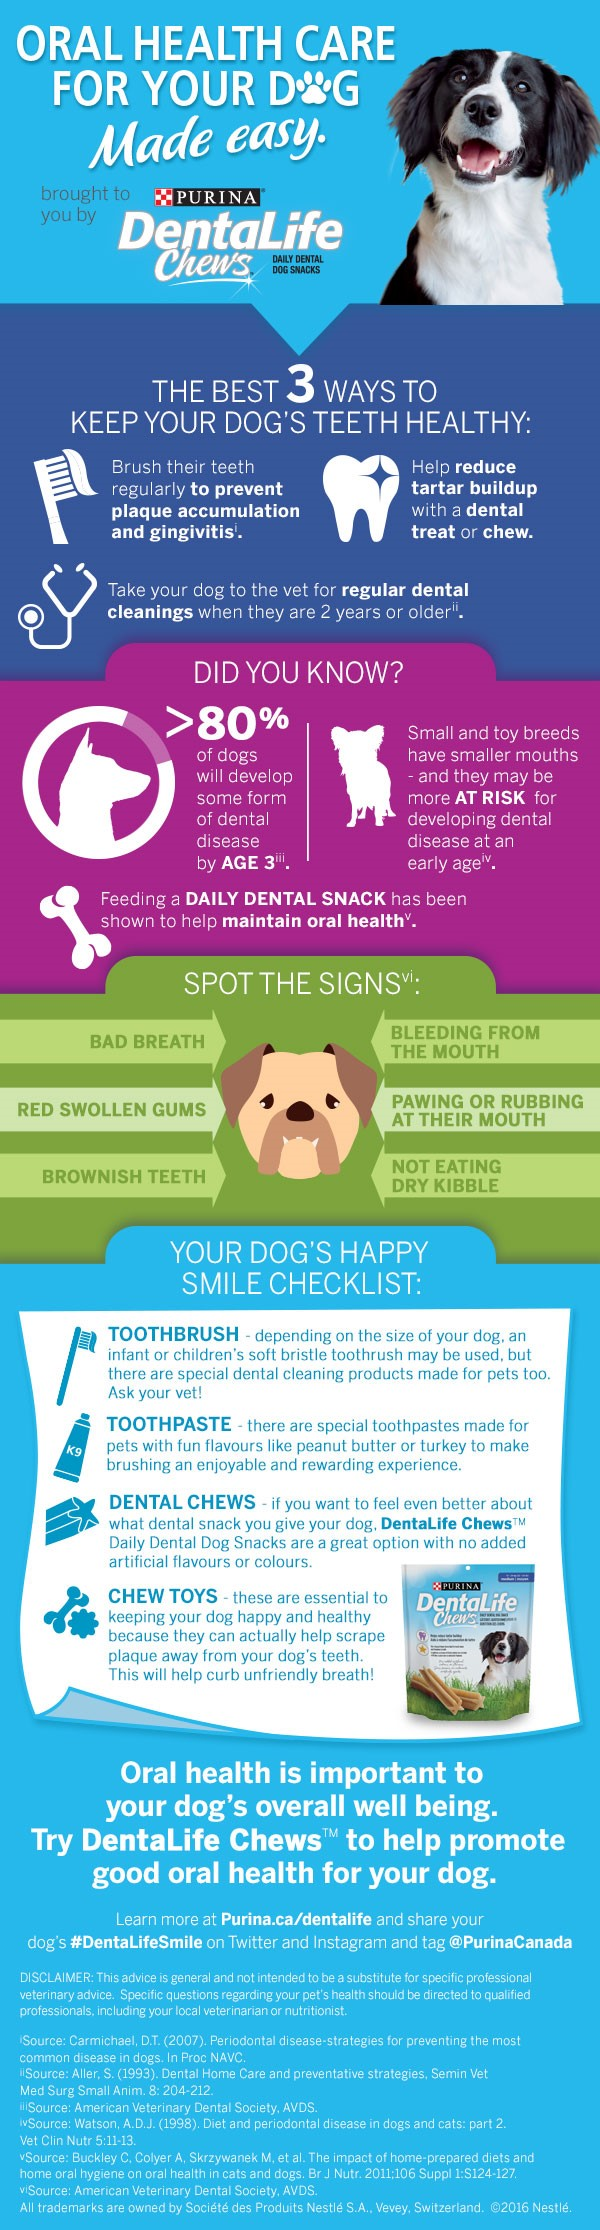 Dentalife Infographic